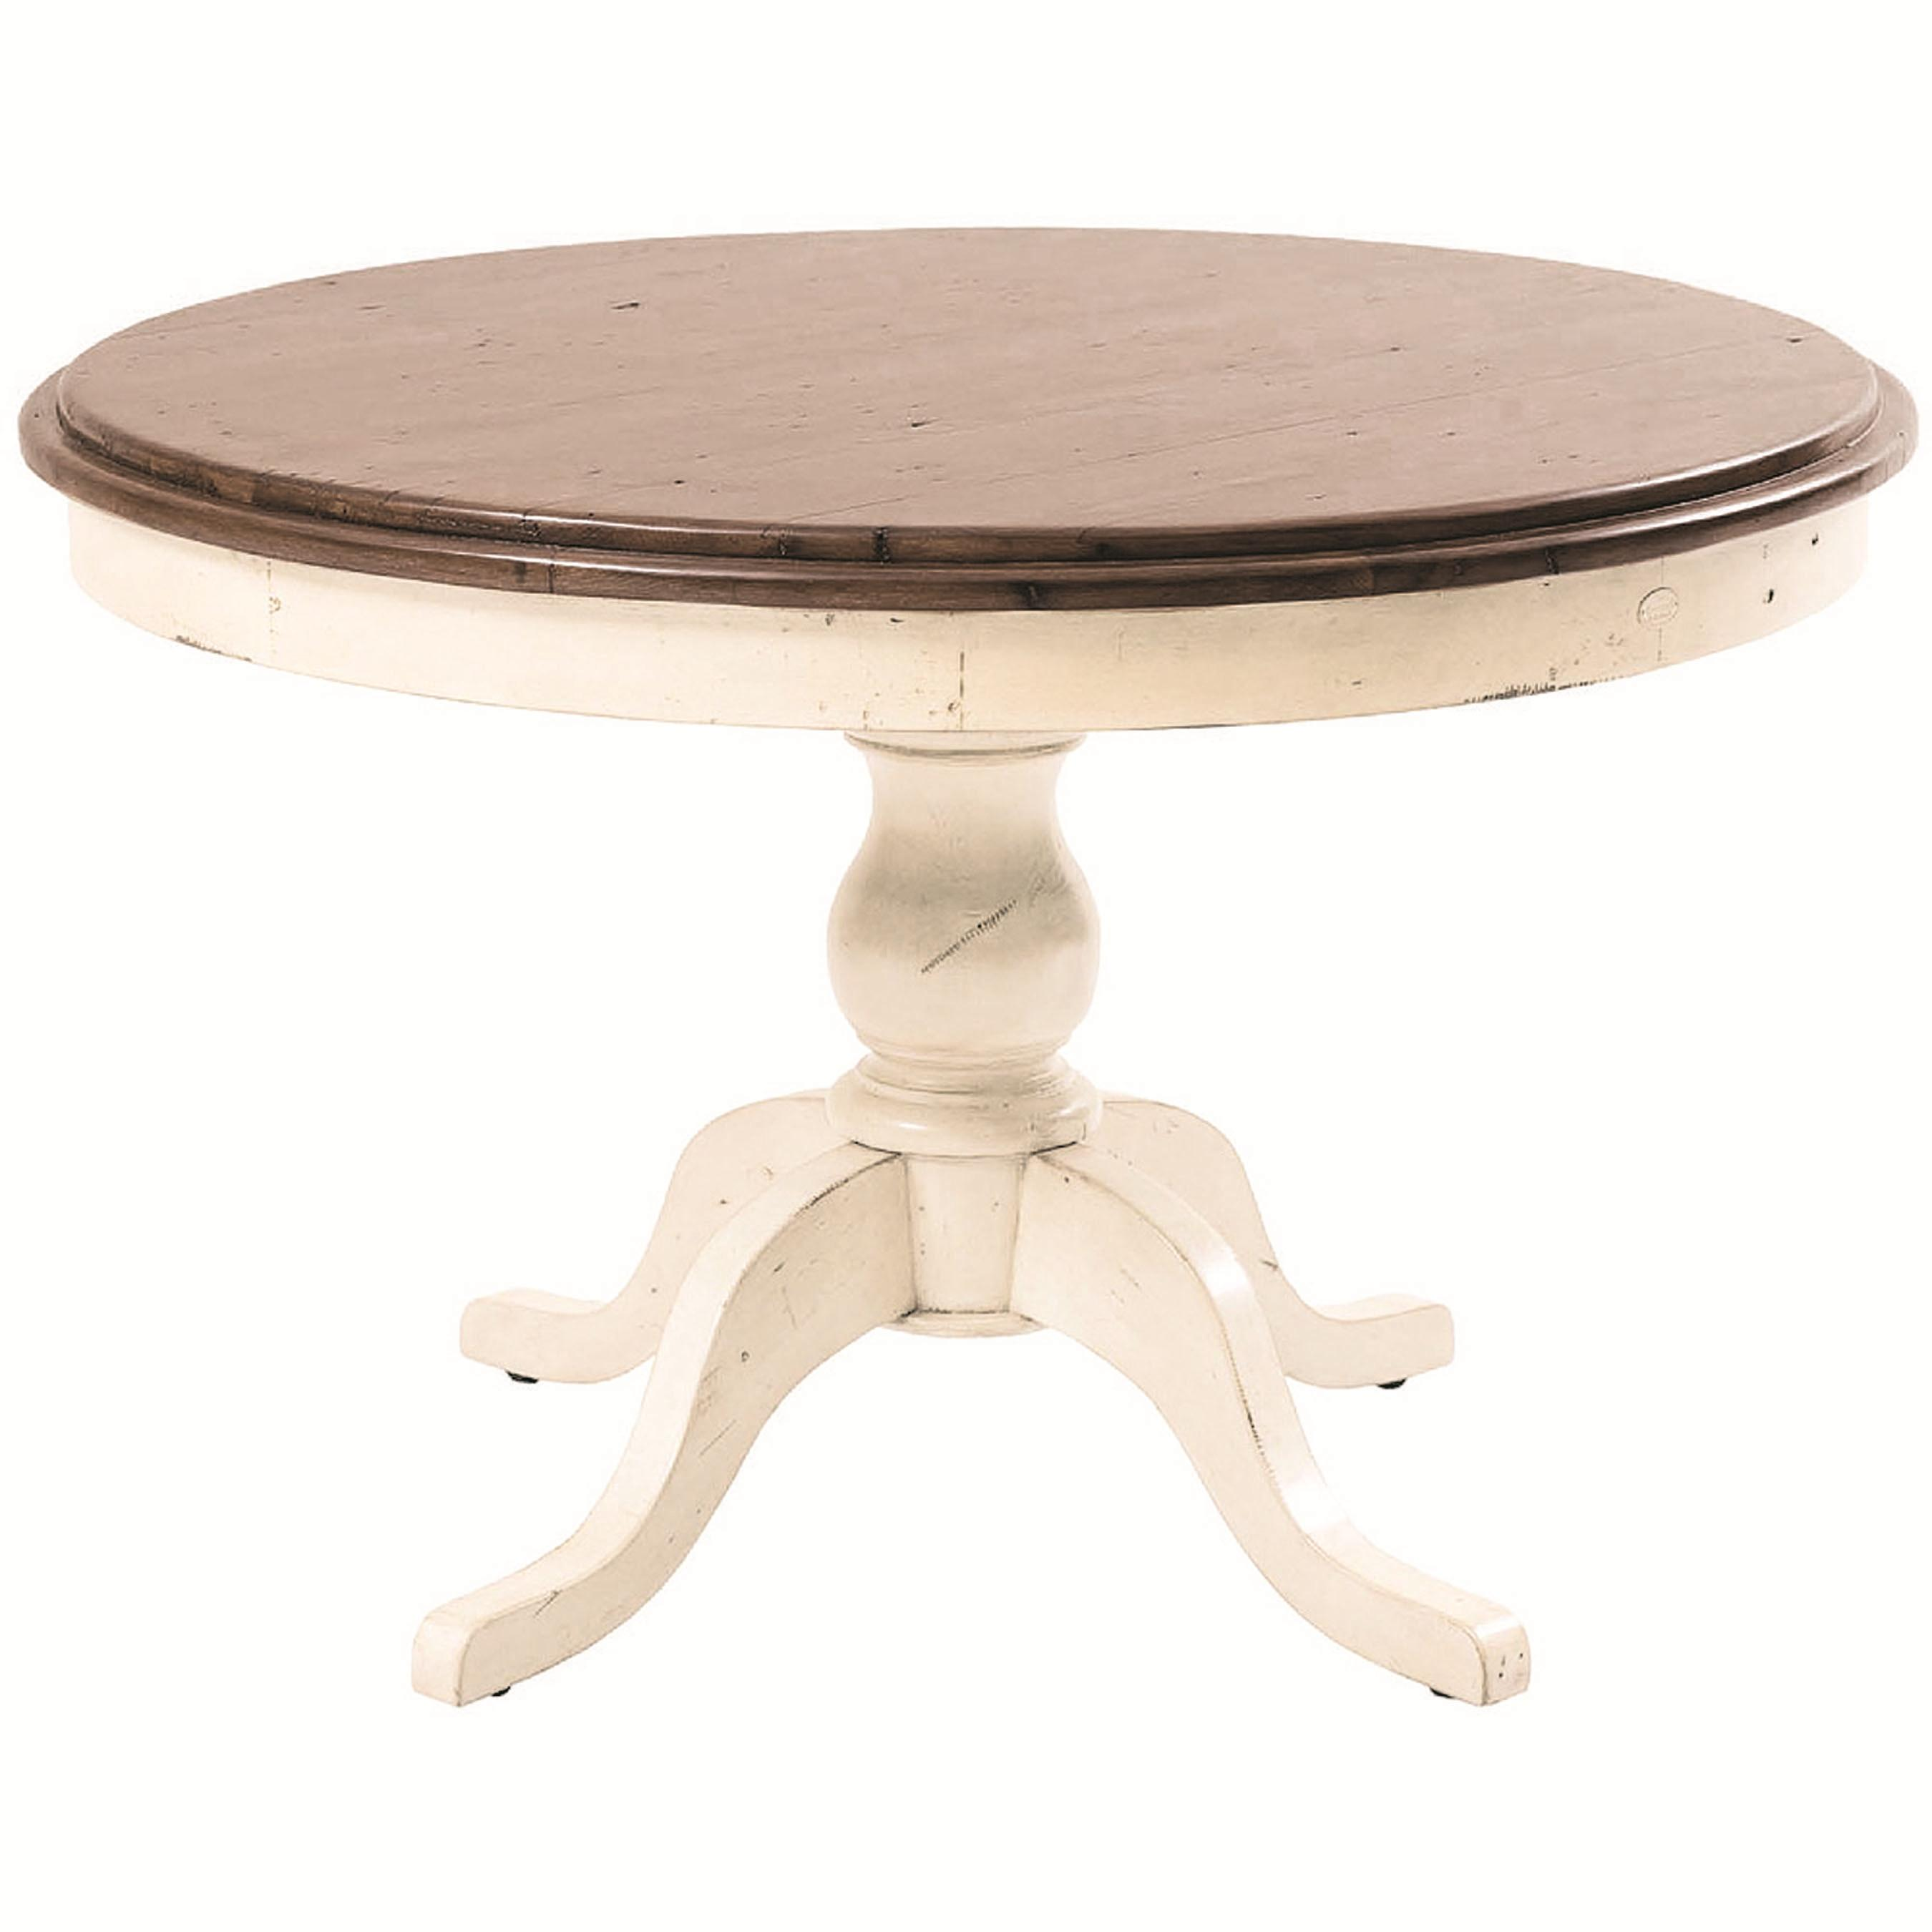 Four hands cornwall single pedestal round dining table for Round dining table for 4